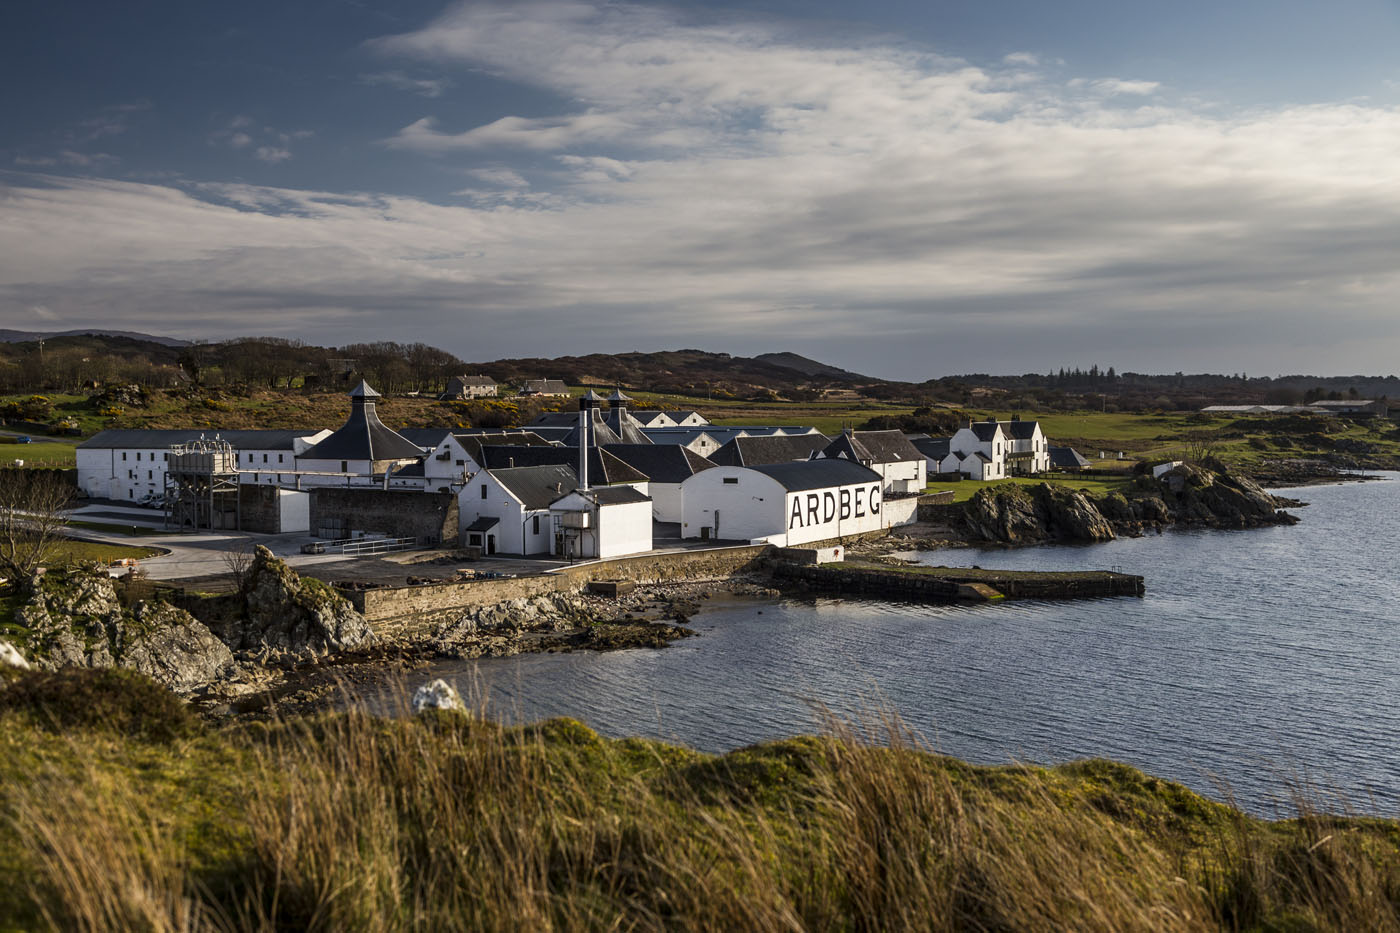 Ardbeg-Distillery-Islay-View.jpg